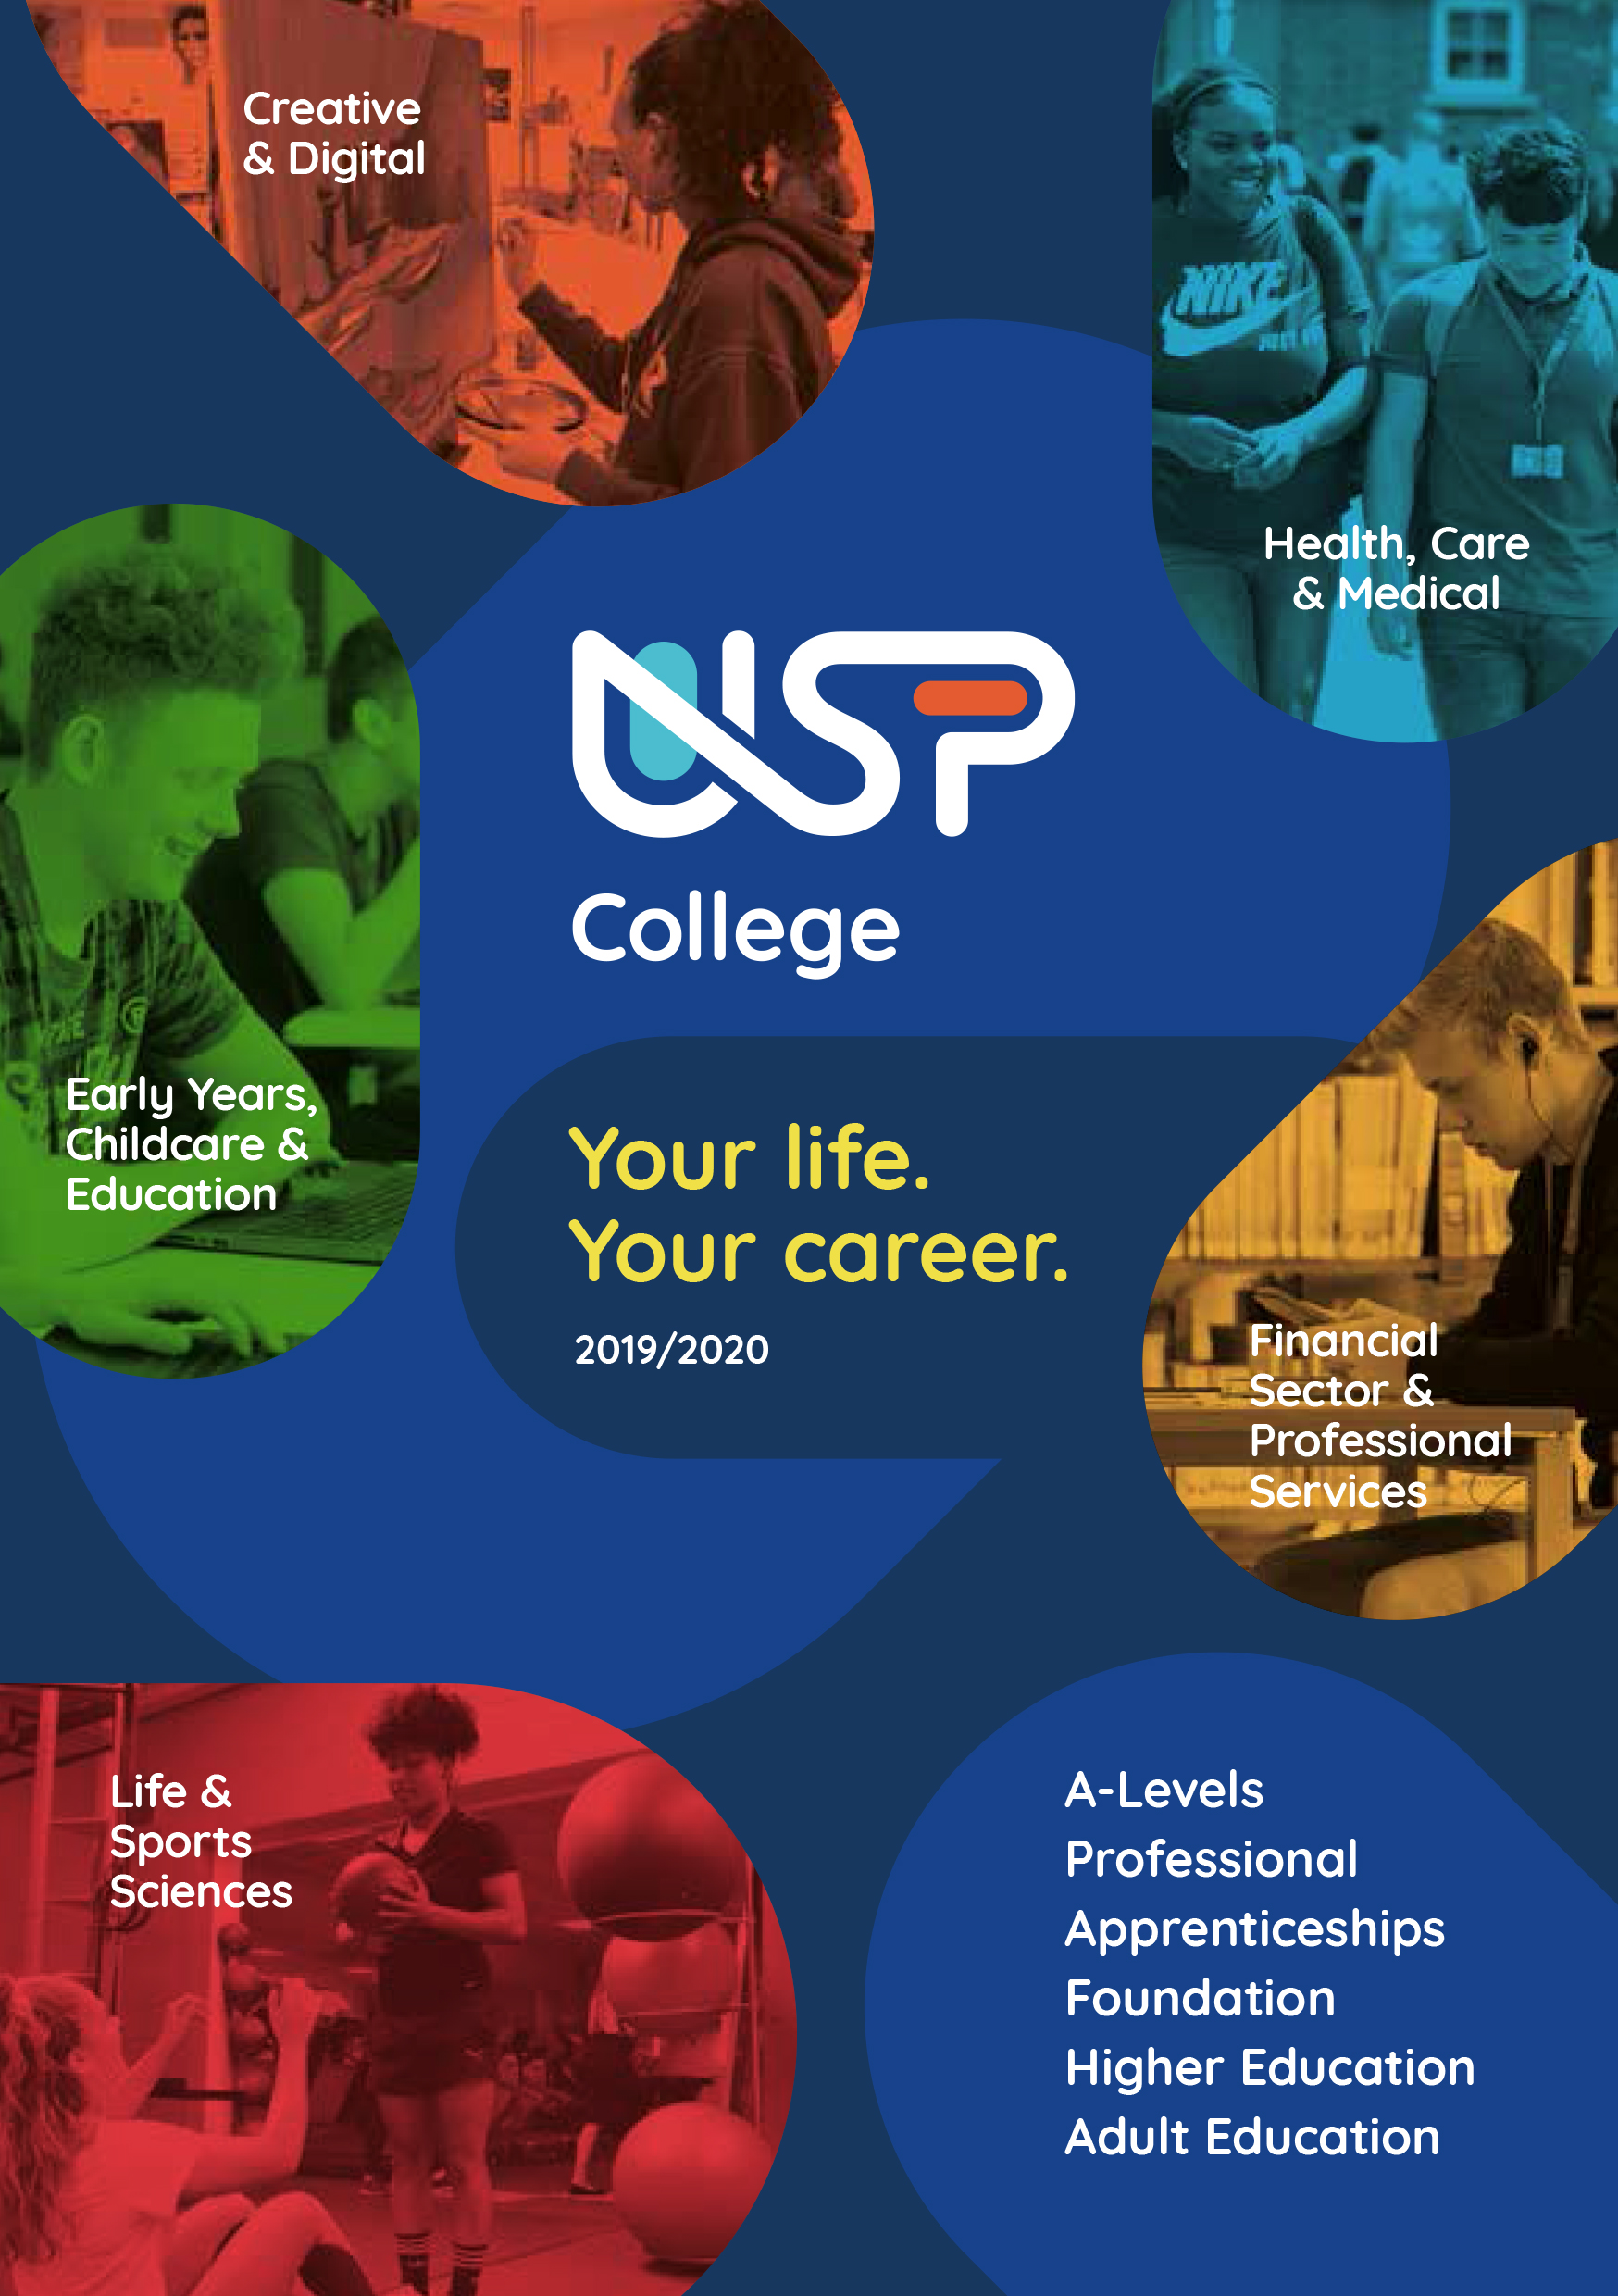 USP College Course Information Guide.jpg